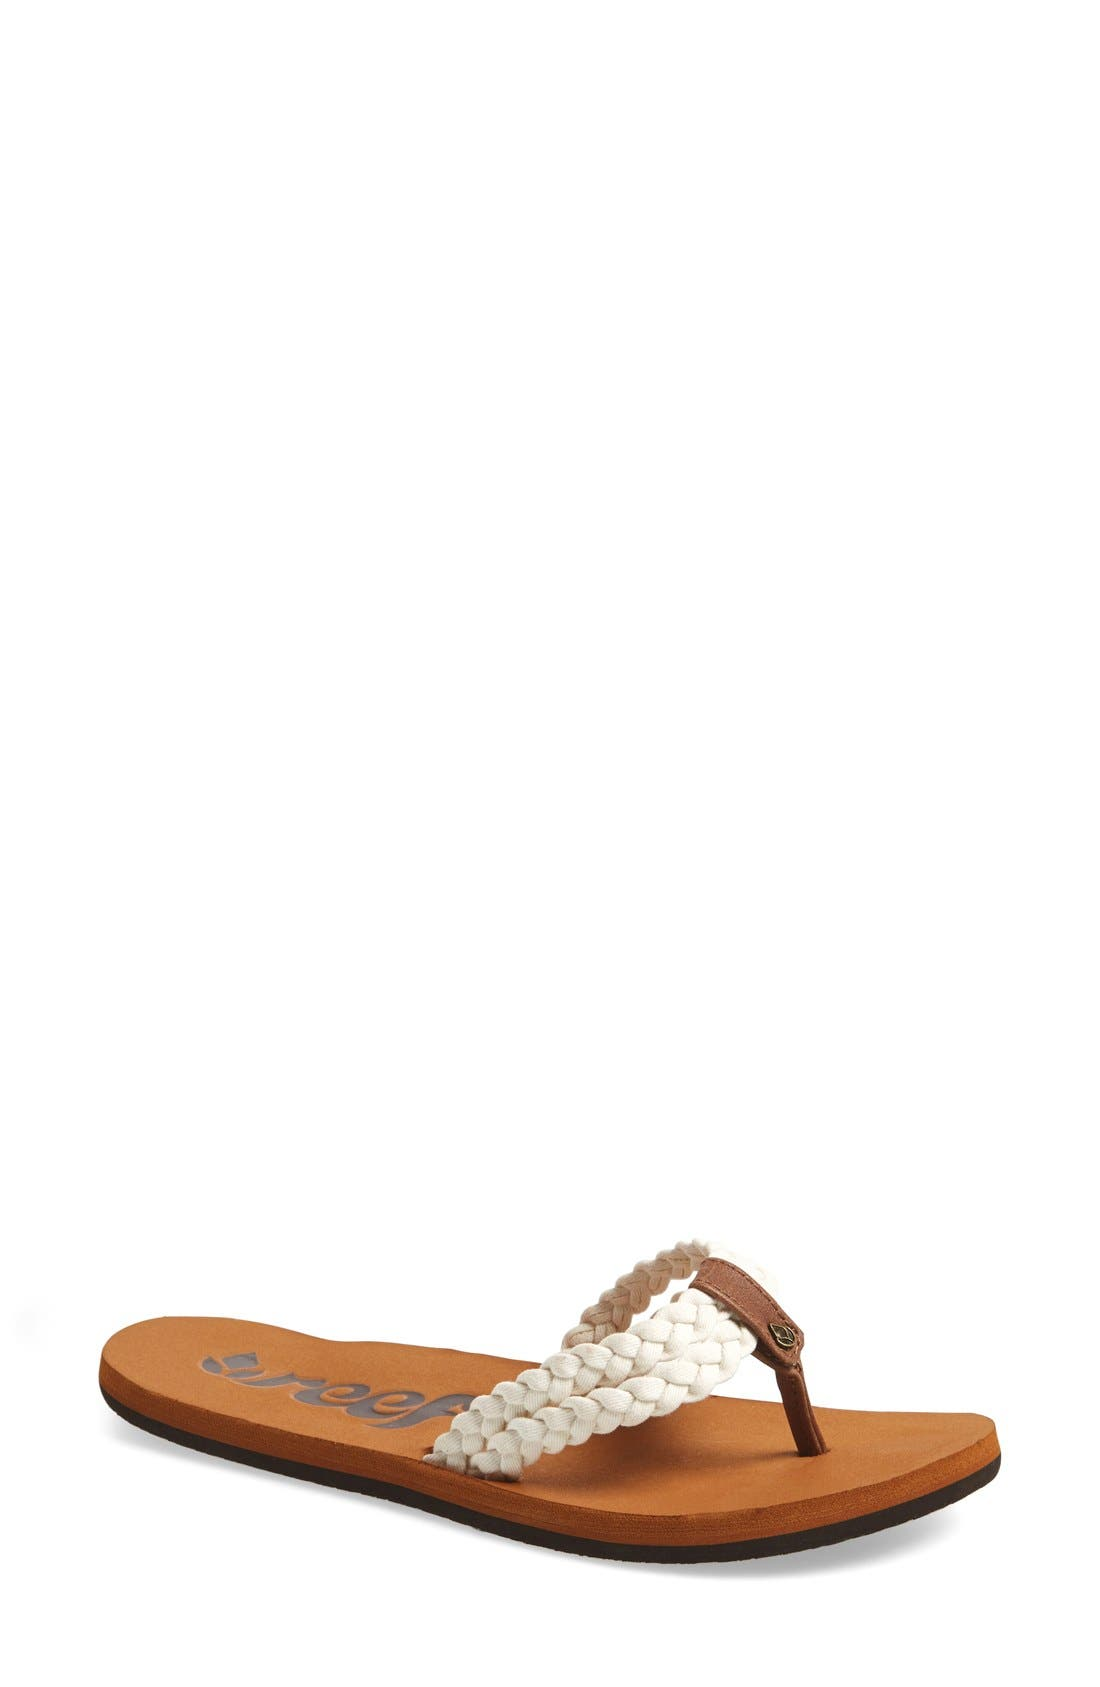 Main Image - Reef 'Twisted Sky' Flip-Flop Thong Sandal (Women)